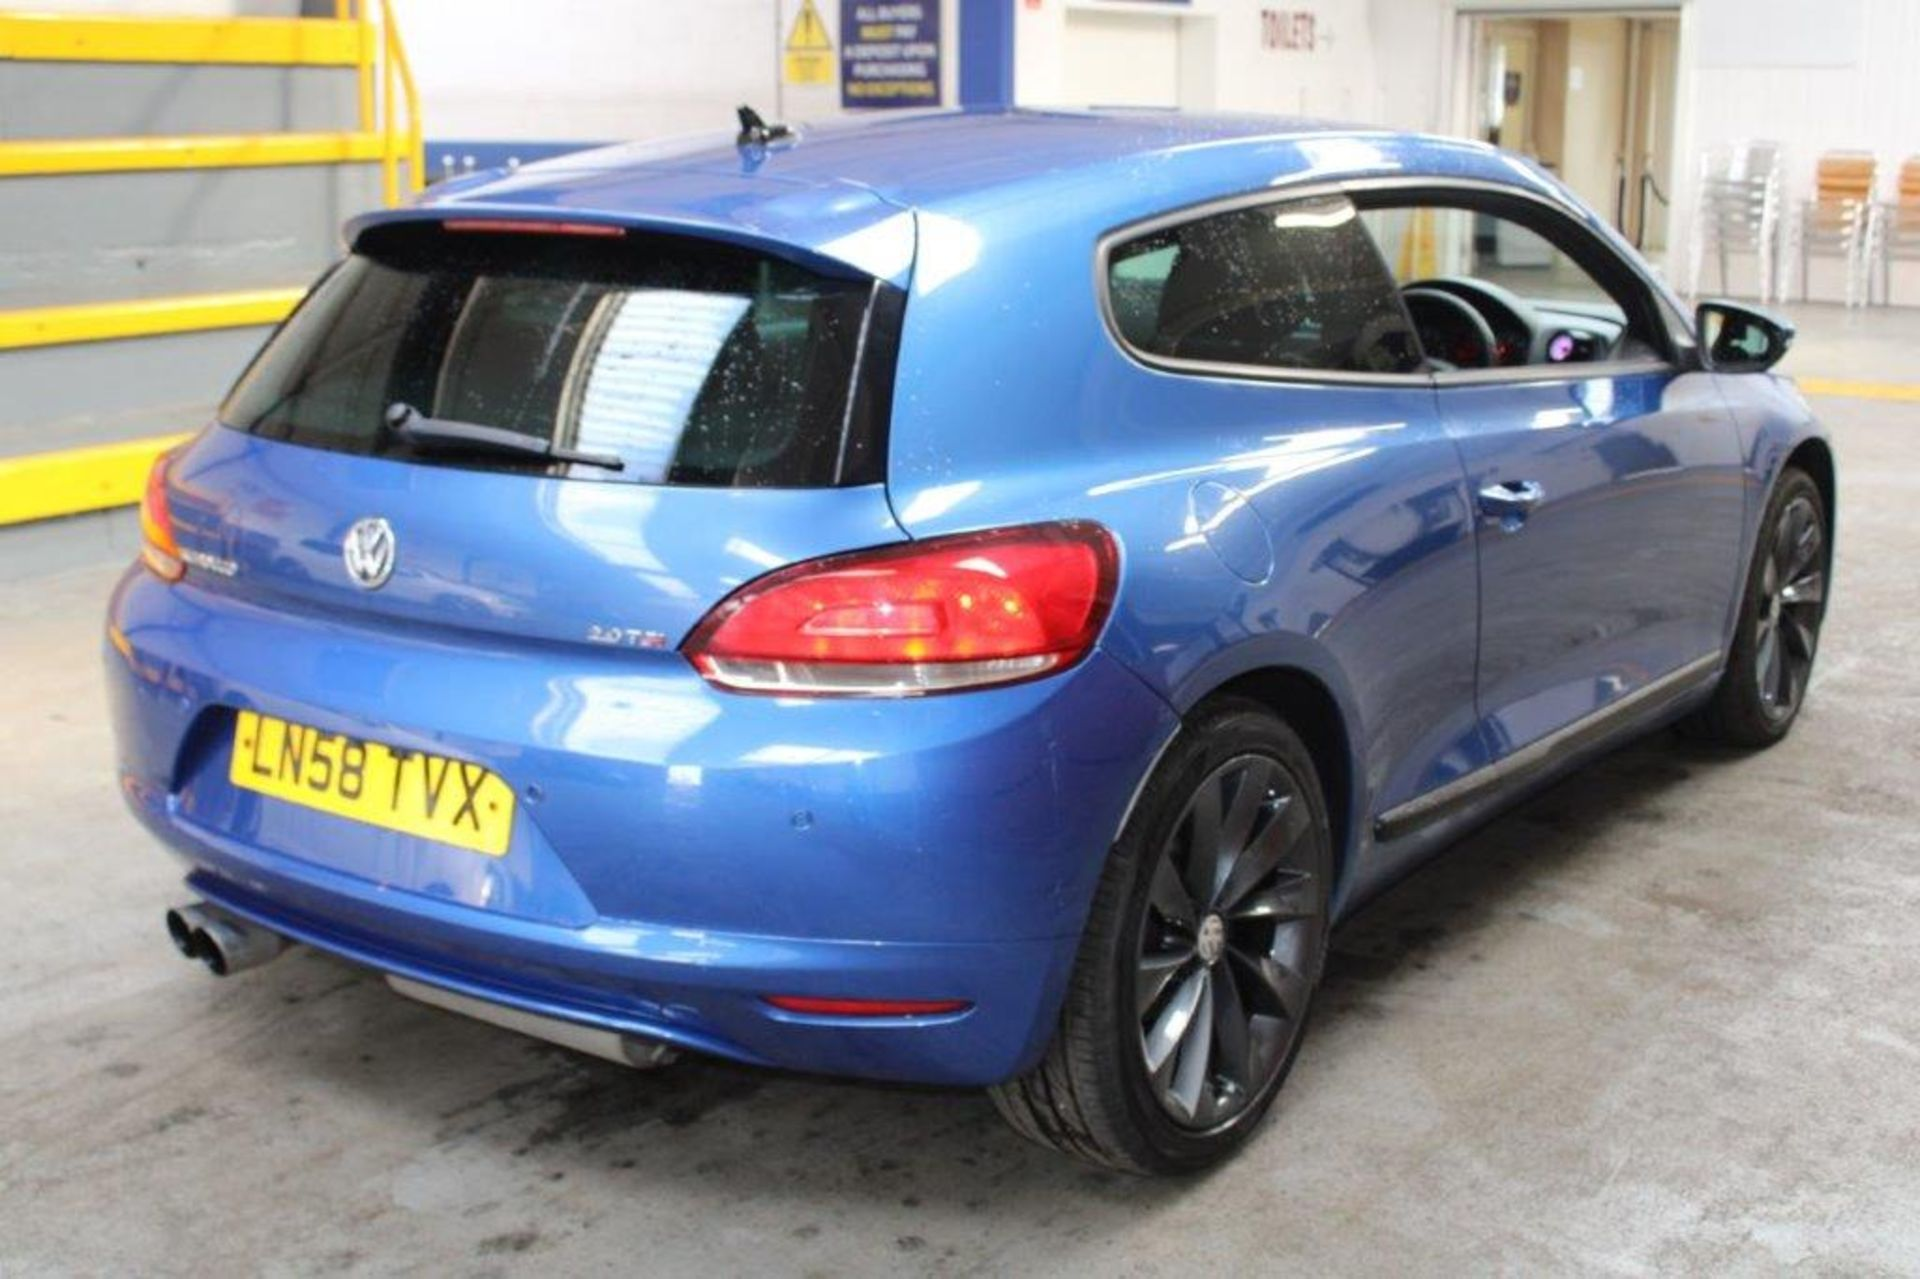 58 08 VW Scirocco GT - Image 10 of 29